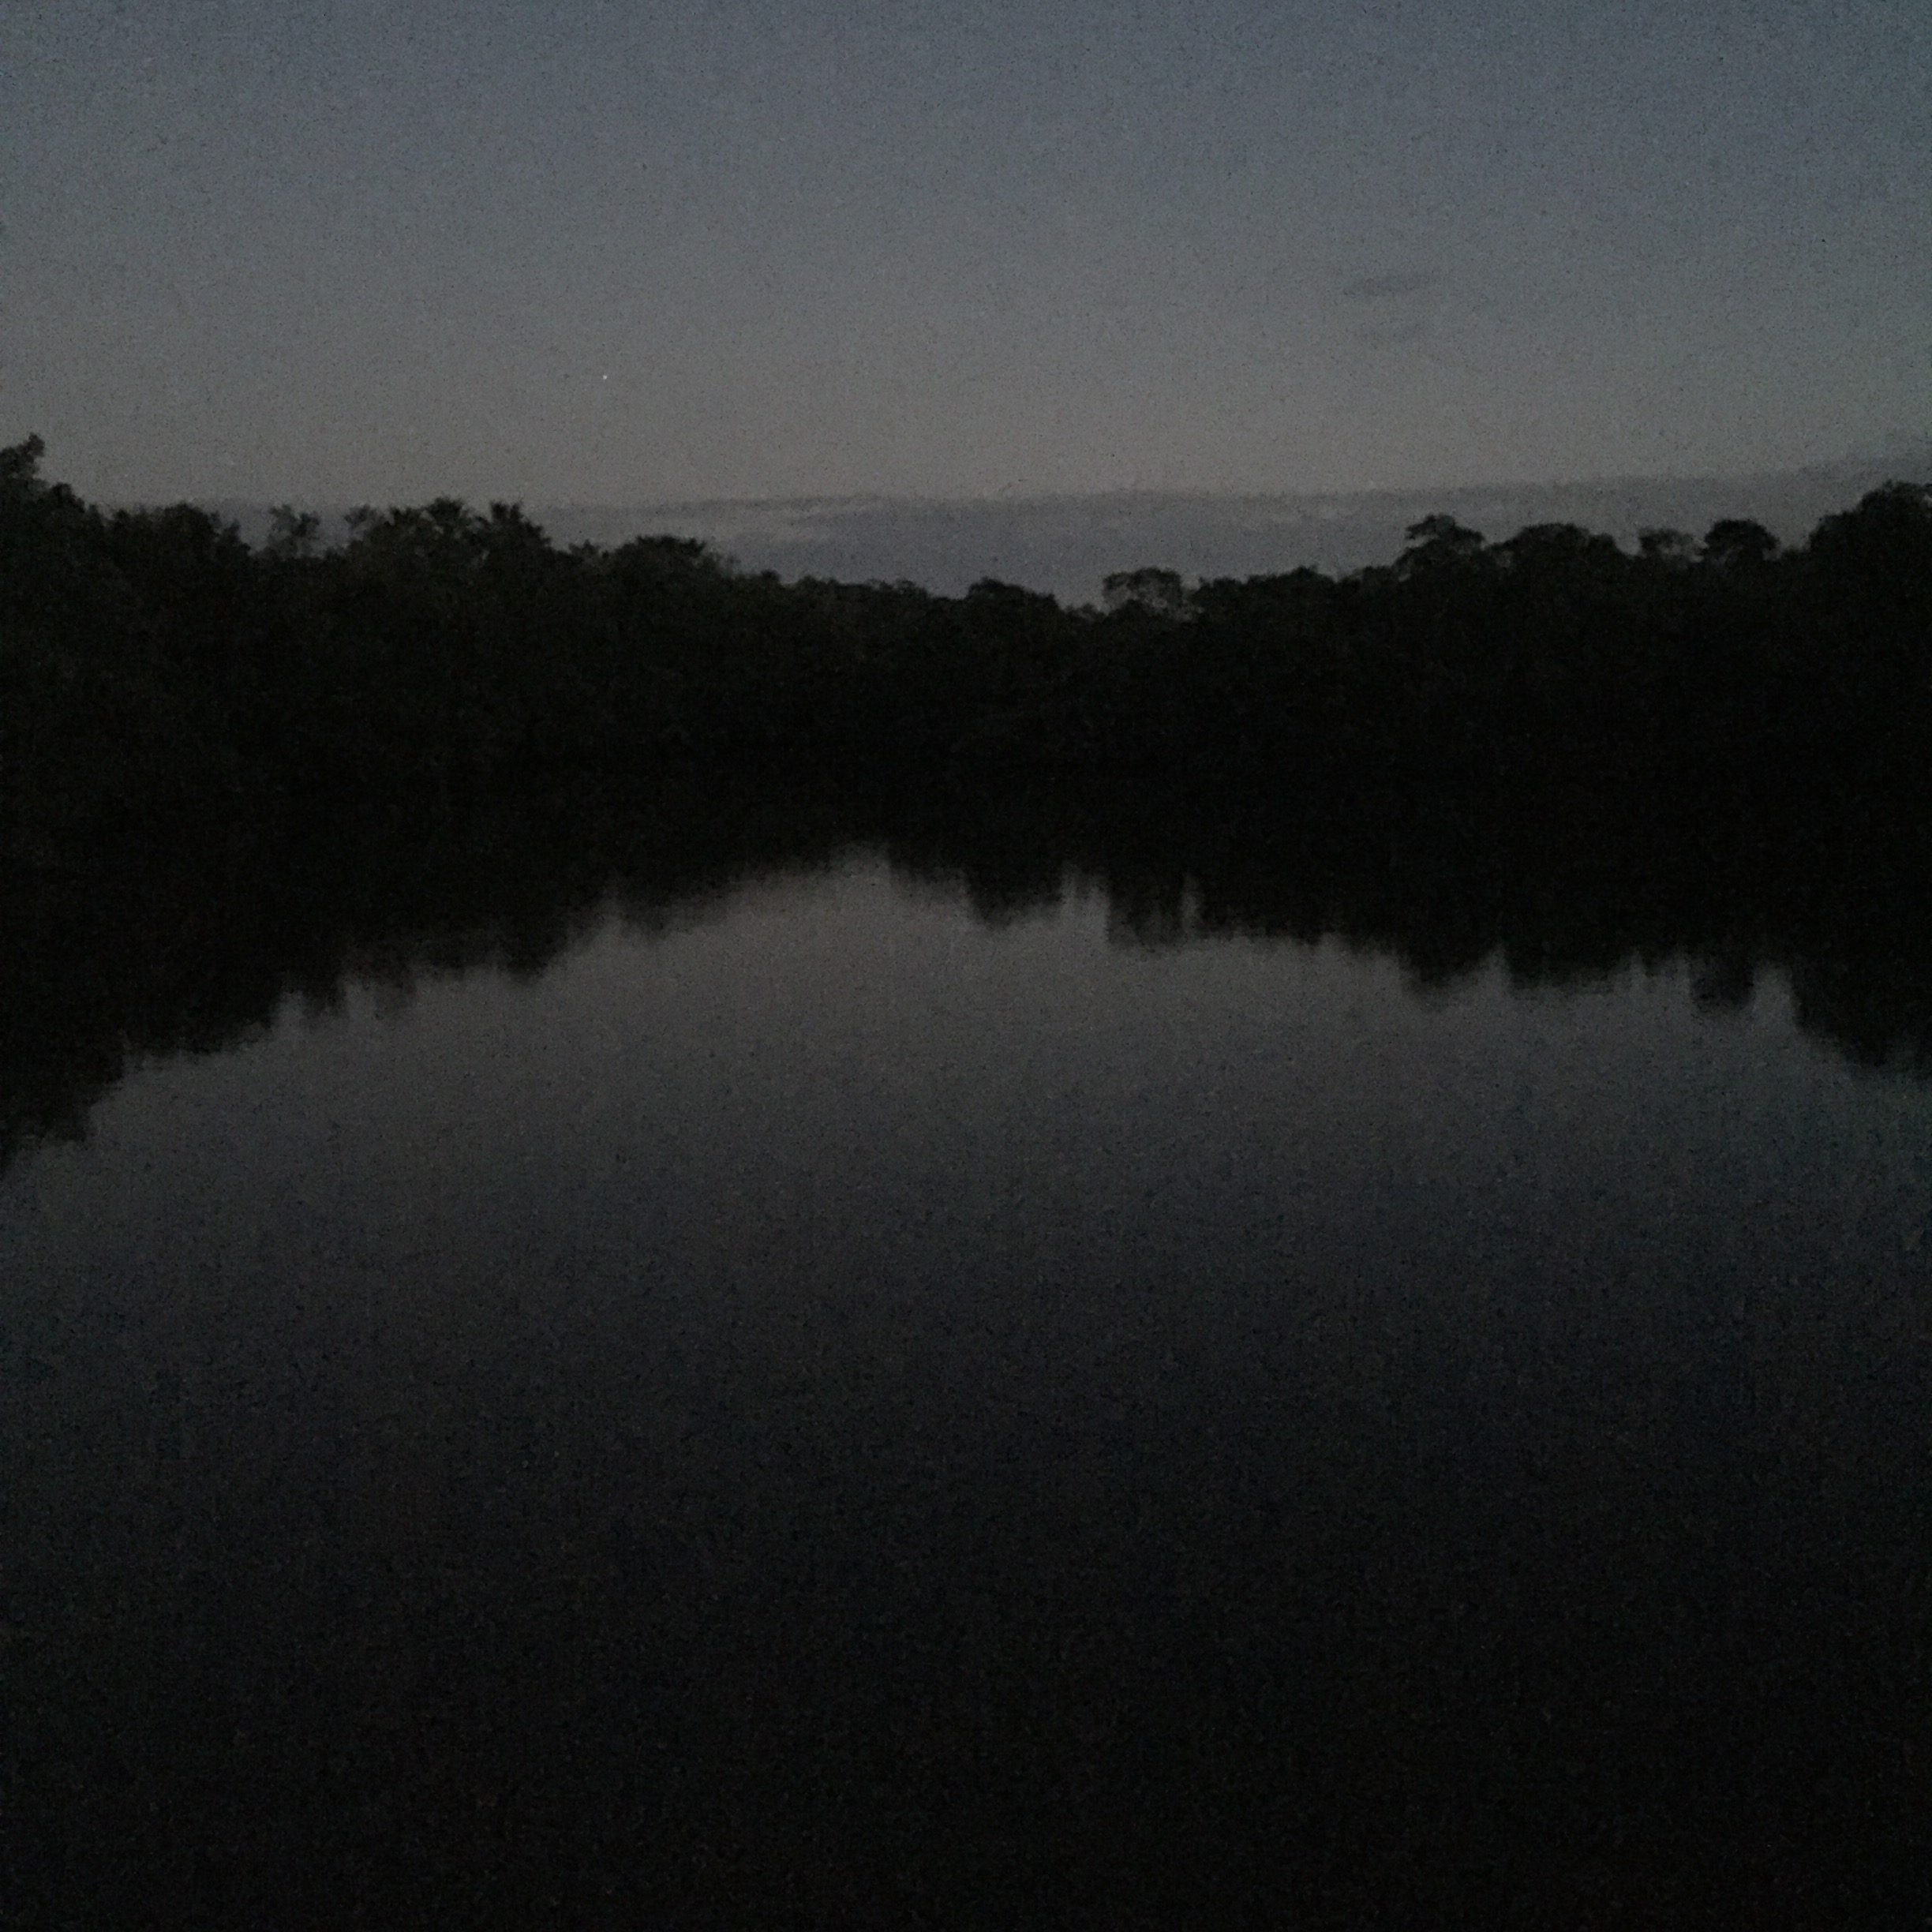 This is actually a lake we discovered when taking our short walk.